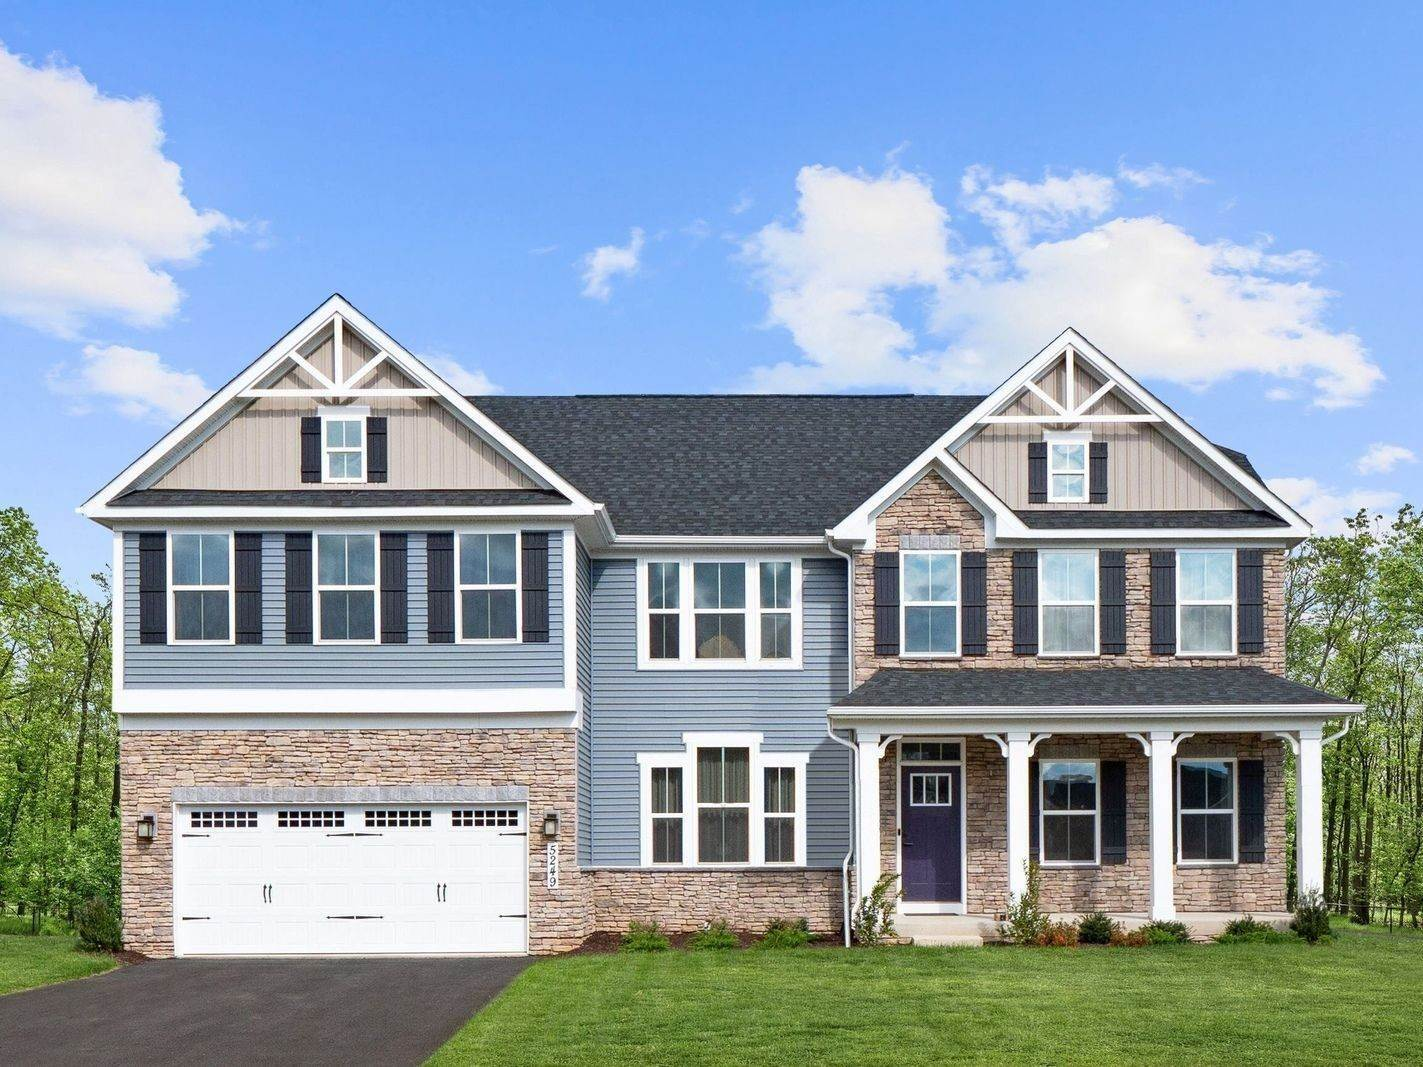 Single Family for Sale at Harvest Ridge - Corsica 13507 Primavera Drive Mount Airy, Maryland 21771 United States